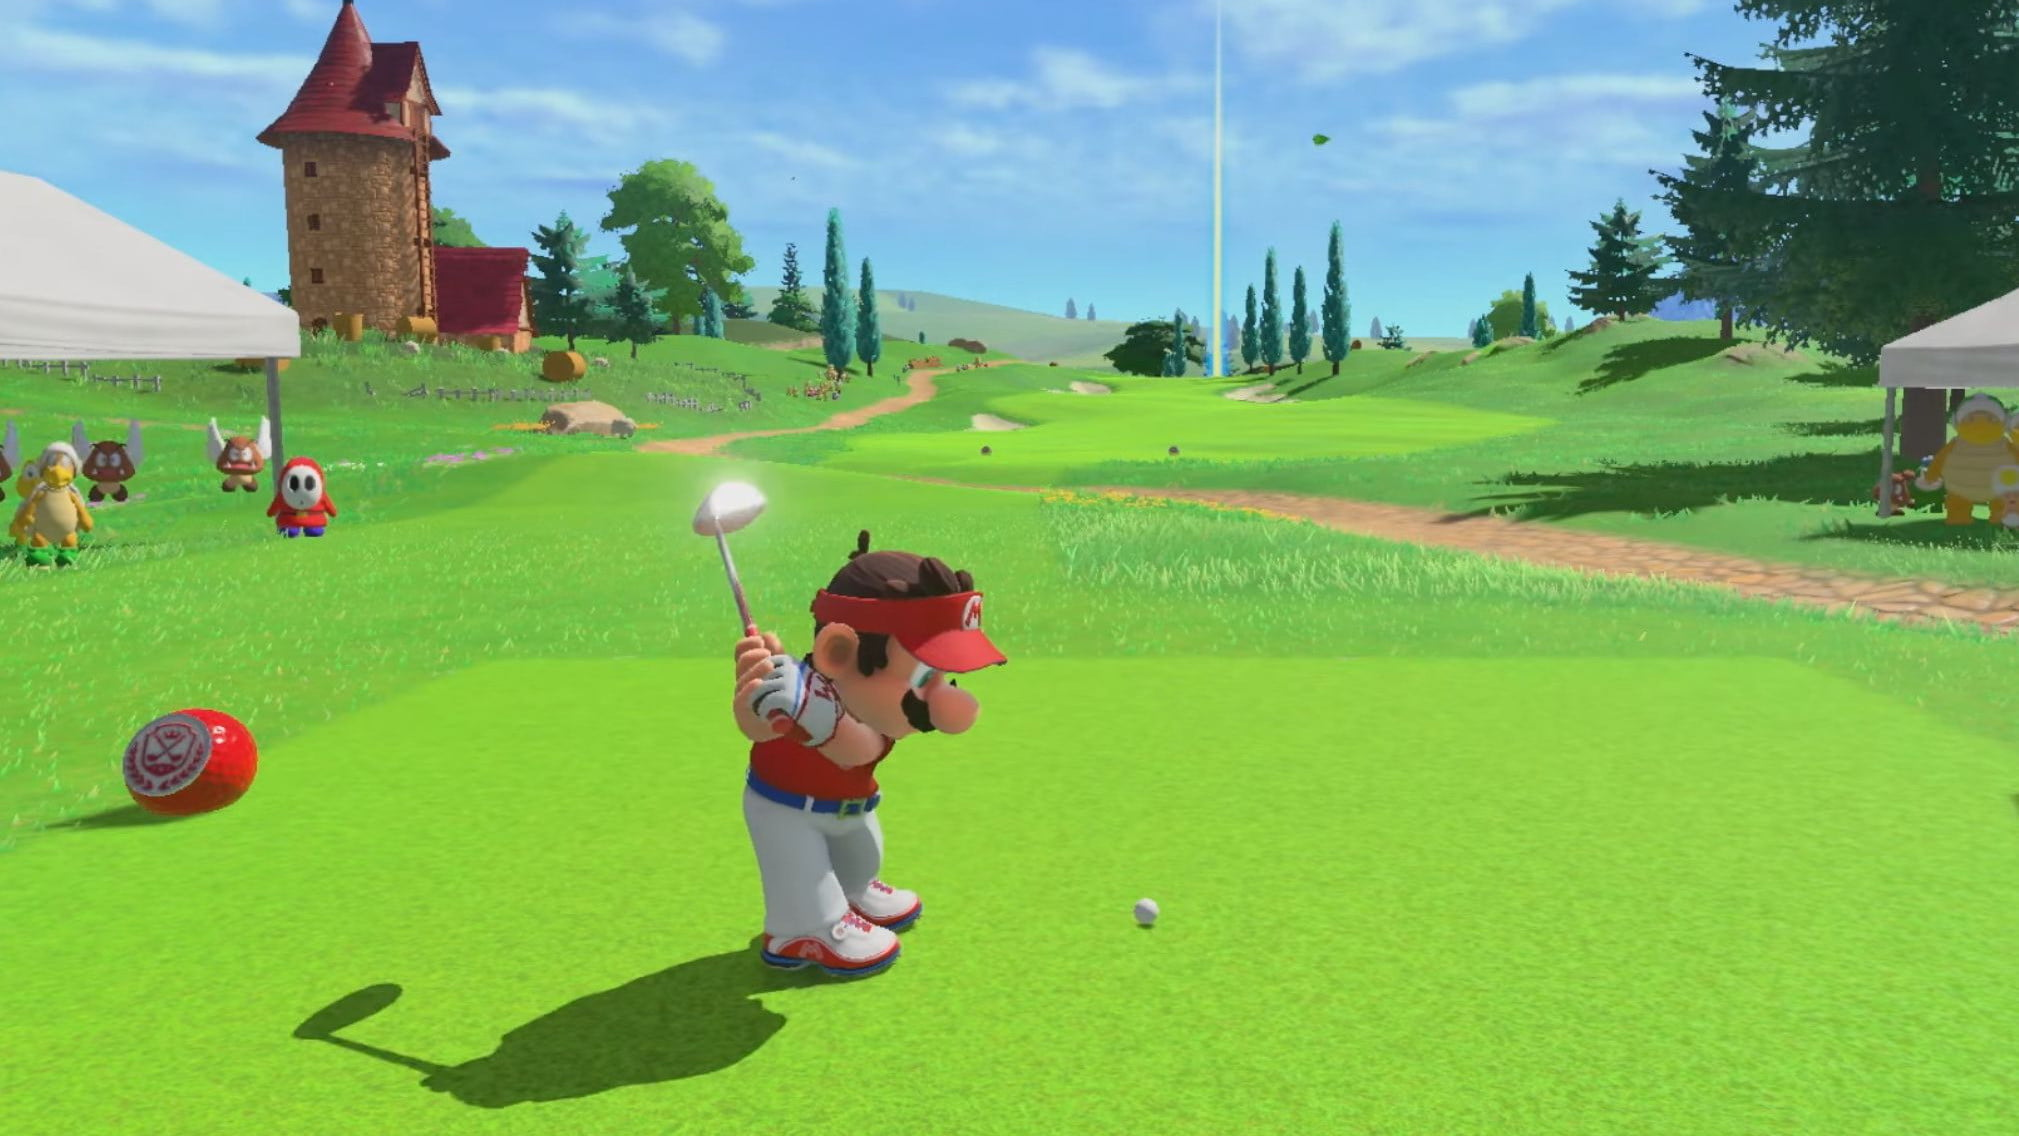 Mario Golf: Super Rush Trailer Details new modes, characters